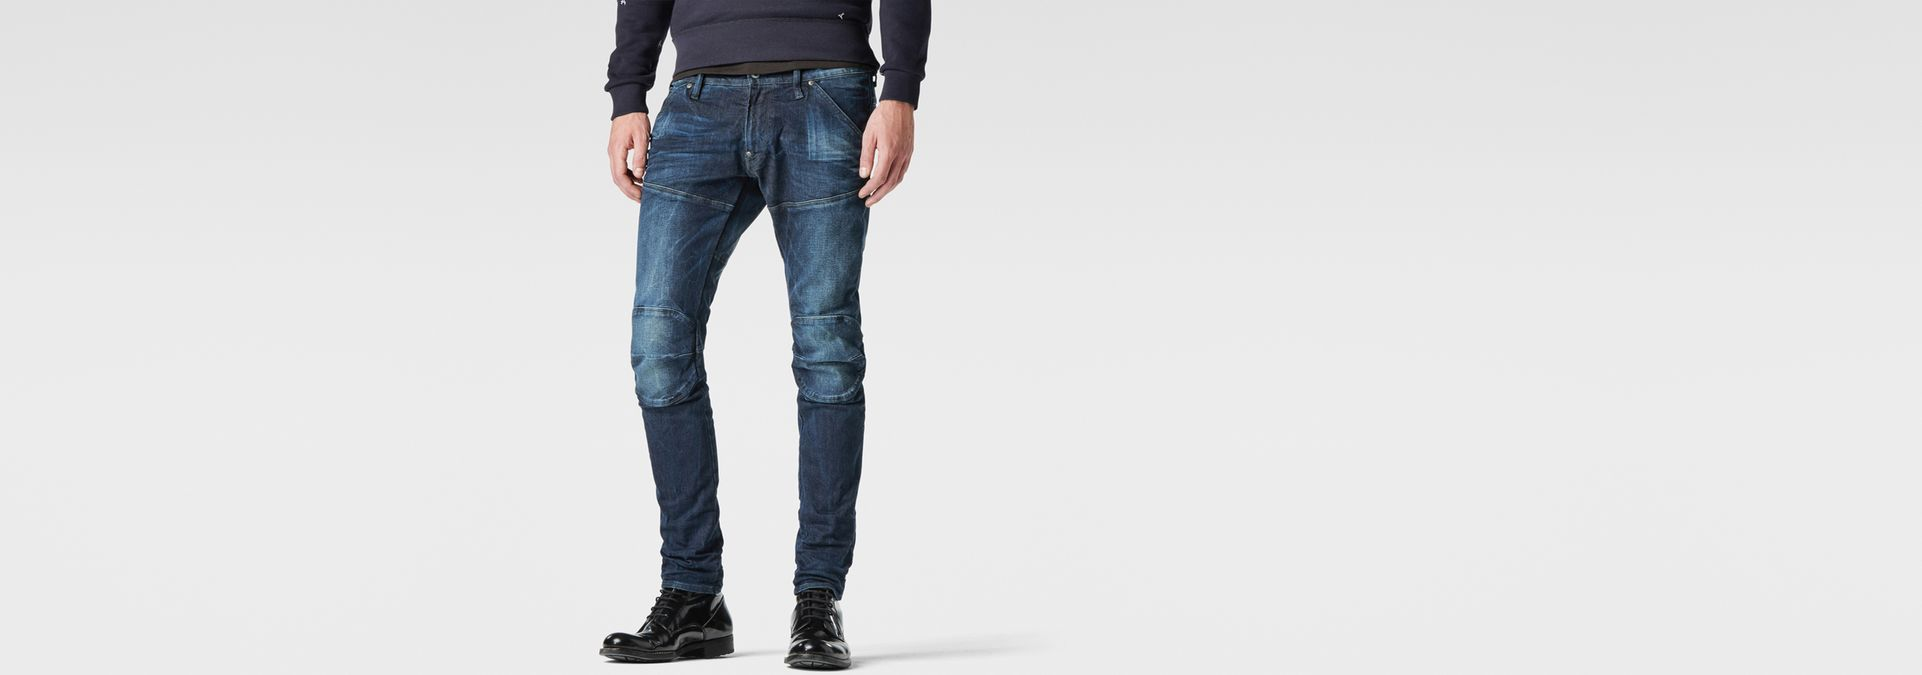 G Star 3D Super Slim Womens Jeans Discount Pictures Cost For Sale jurF8fpWN